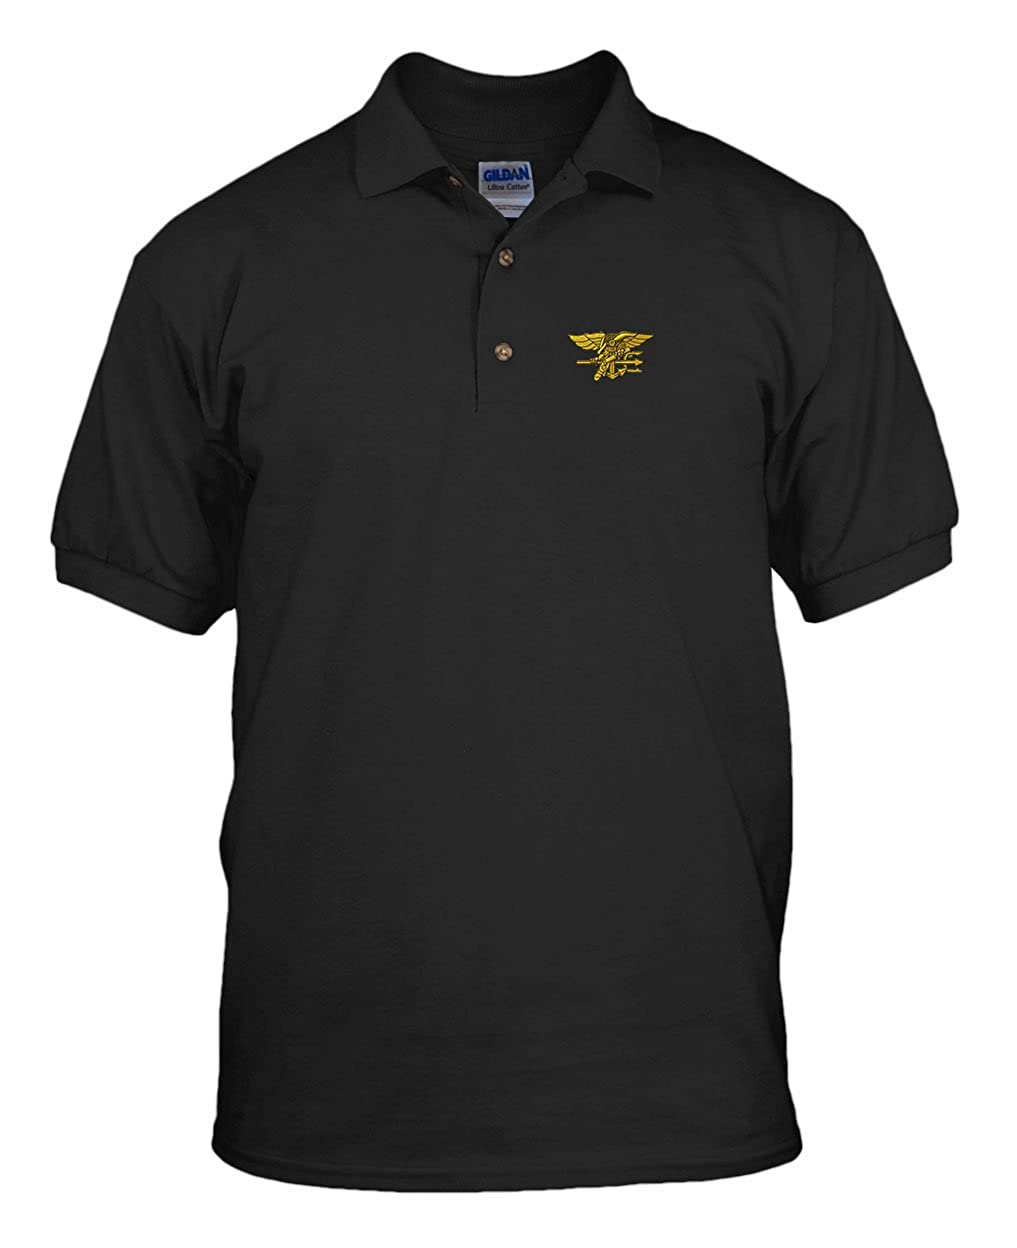 6a4af4cd U.S. Navy Seal Military Embroidery Embroidered Unisex Adult Golf Polo Shirt  Navy X-Large